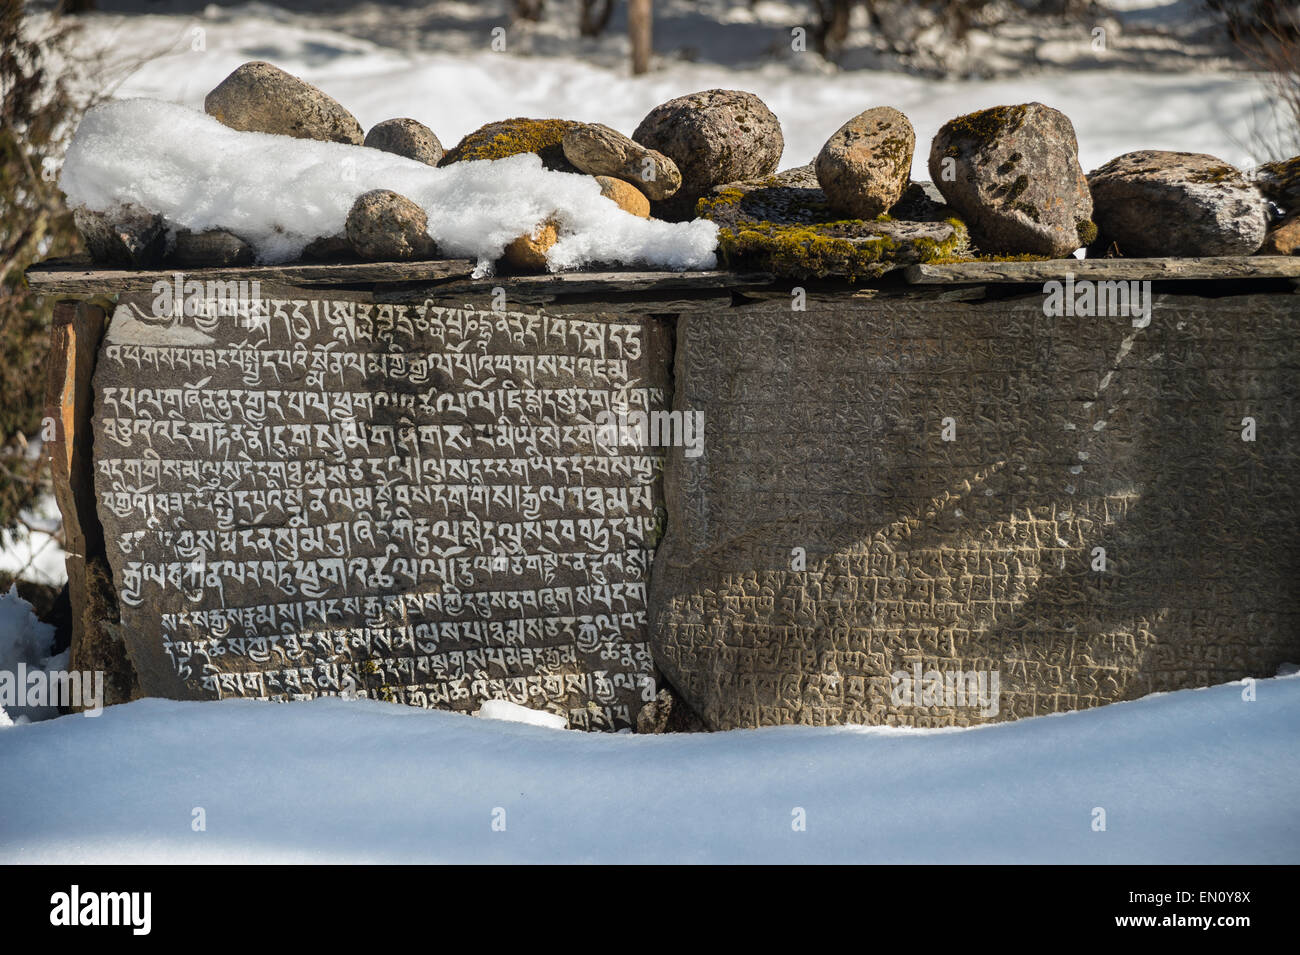 Two large mani stones in the everest region, Nepal - Stock Image